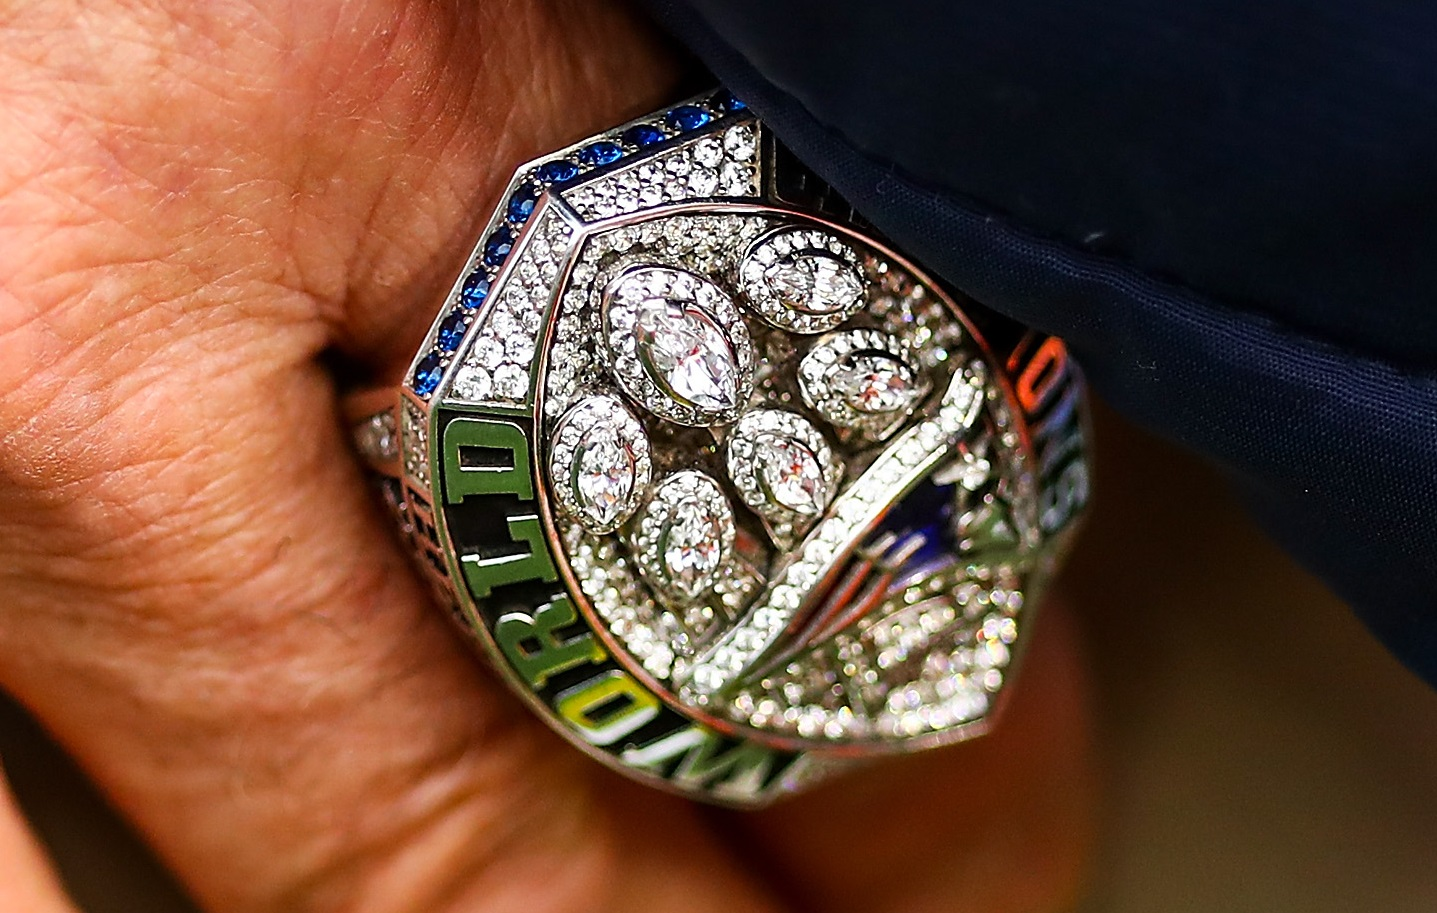 The New England Patriots are believed to have presented about 150 Super Bowl 53 rings to players, coaches, and staff. | Adam Glanzman/Getty Images